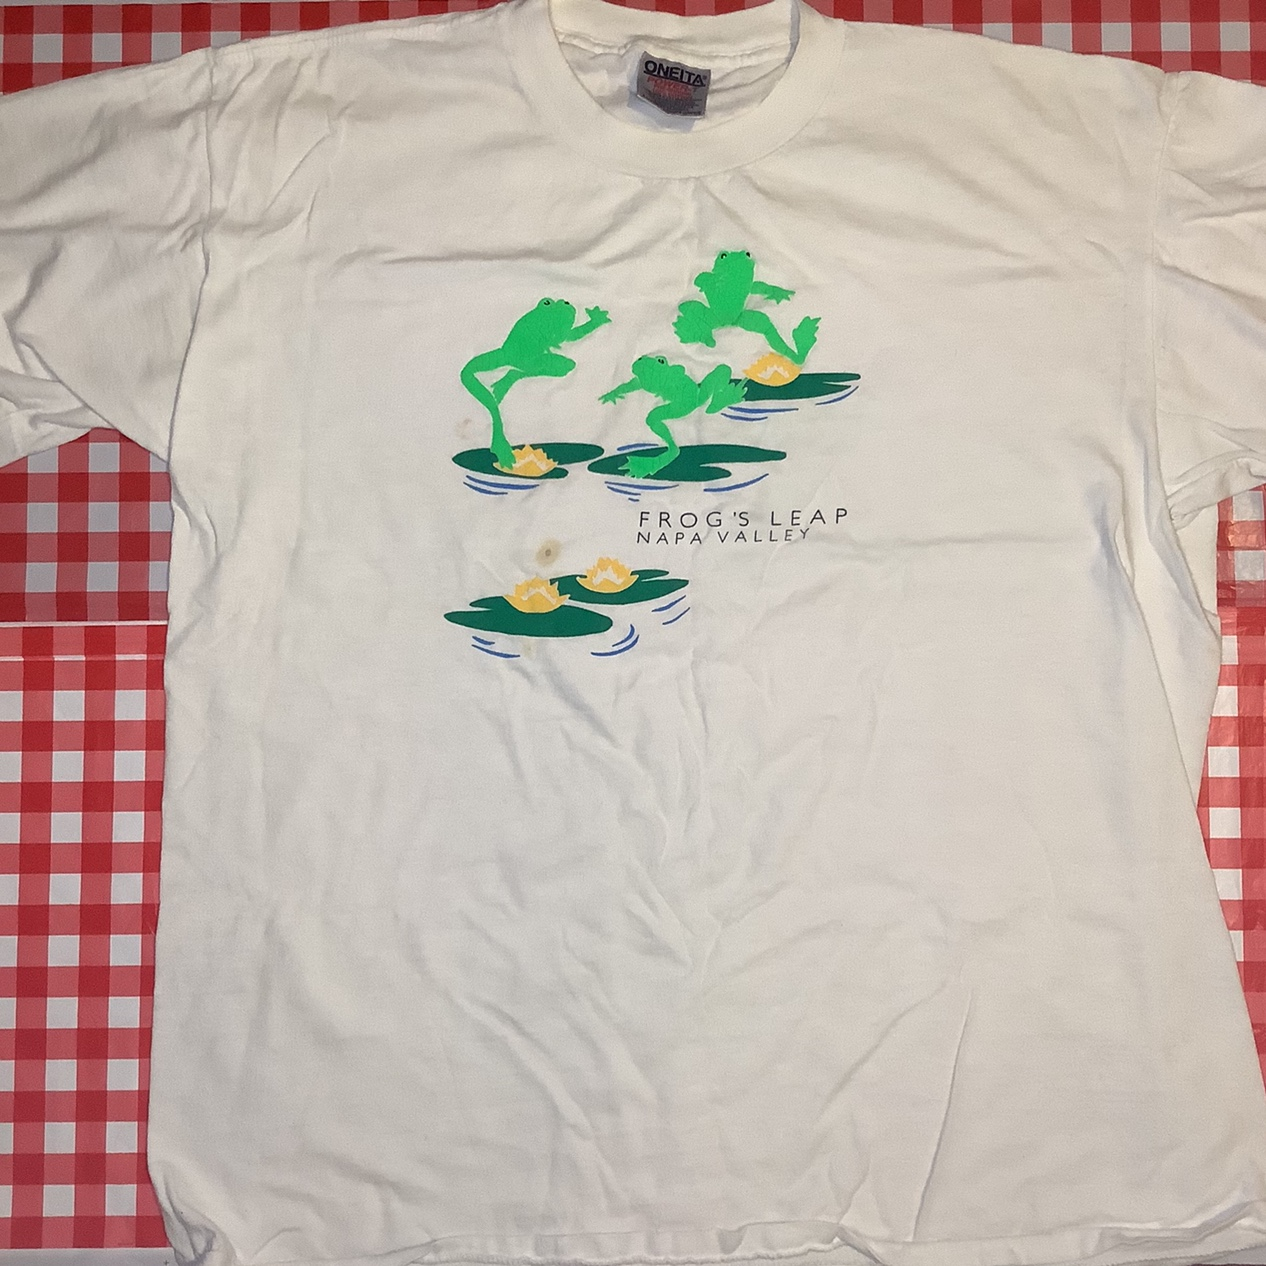 Product Image 1 - vintage frog t-shirt🐸 graphic t-shirt with